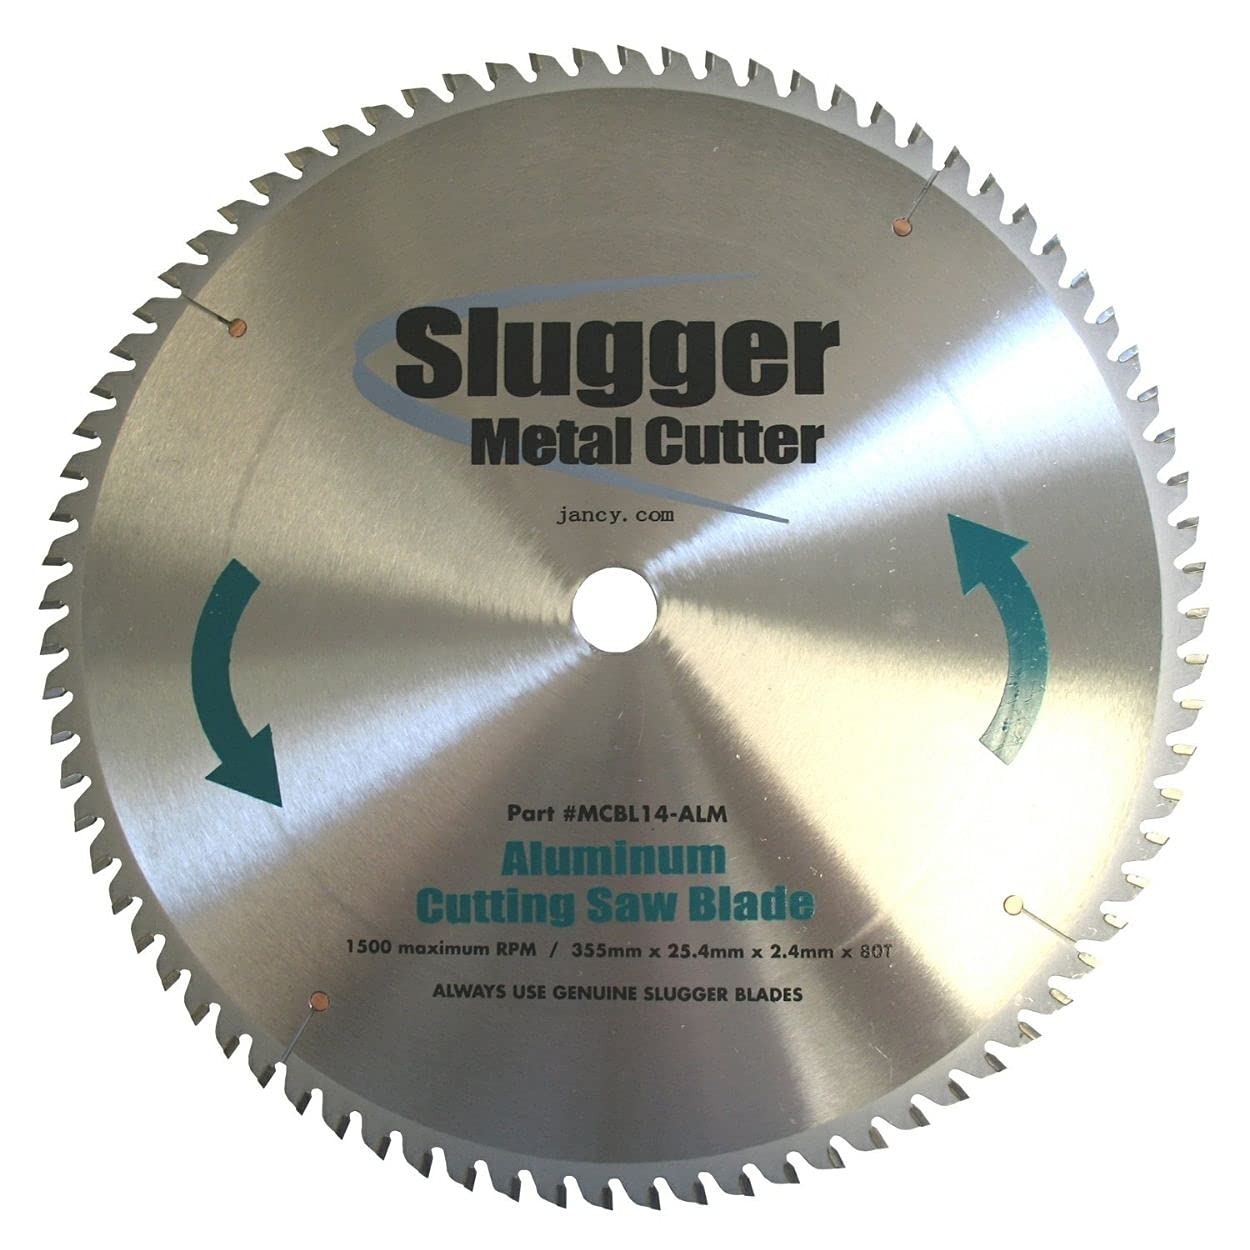 Jancy Slugger by Fein - Aluminum for High order Cutting Th Excellent Mild Blade Saw